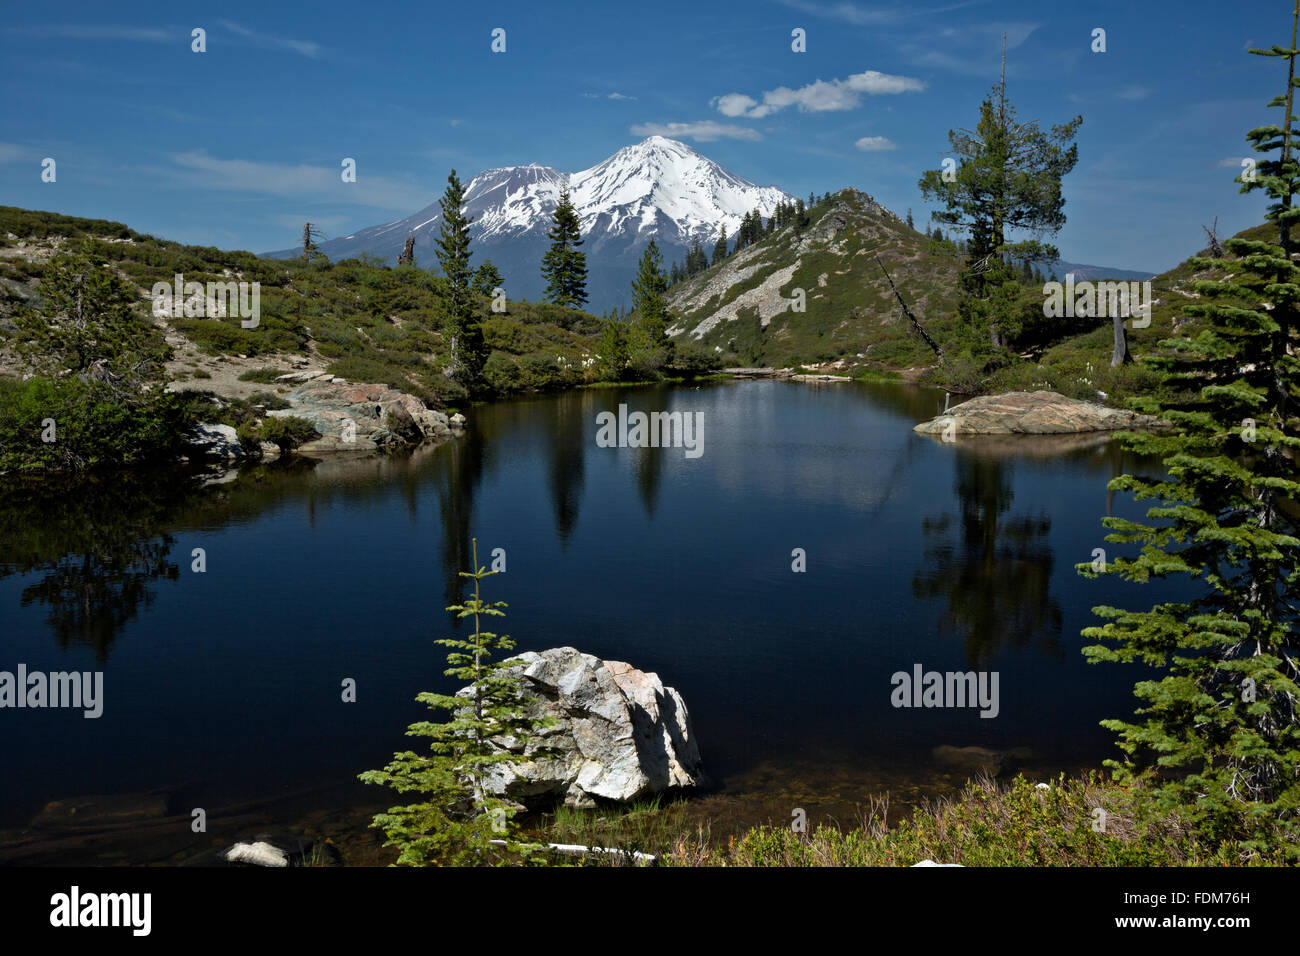 CA02651-00...CALIFORNIA - Mount Shasta from Heart Lake in the Shasta - Trinity National Forest. - Stock Image